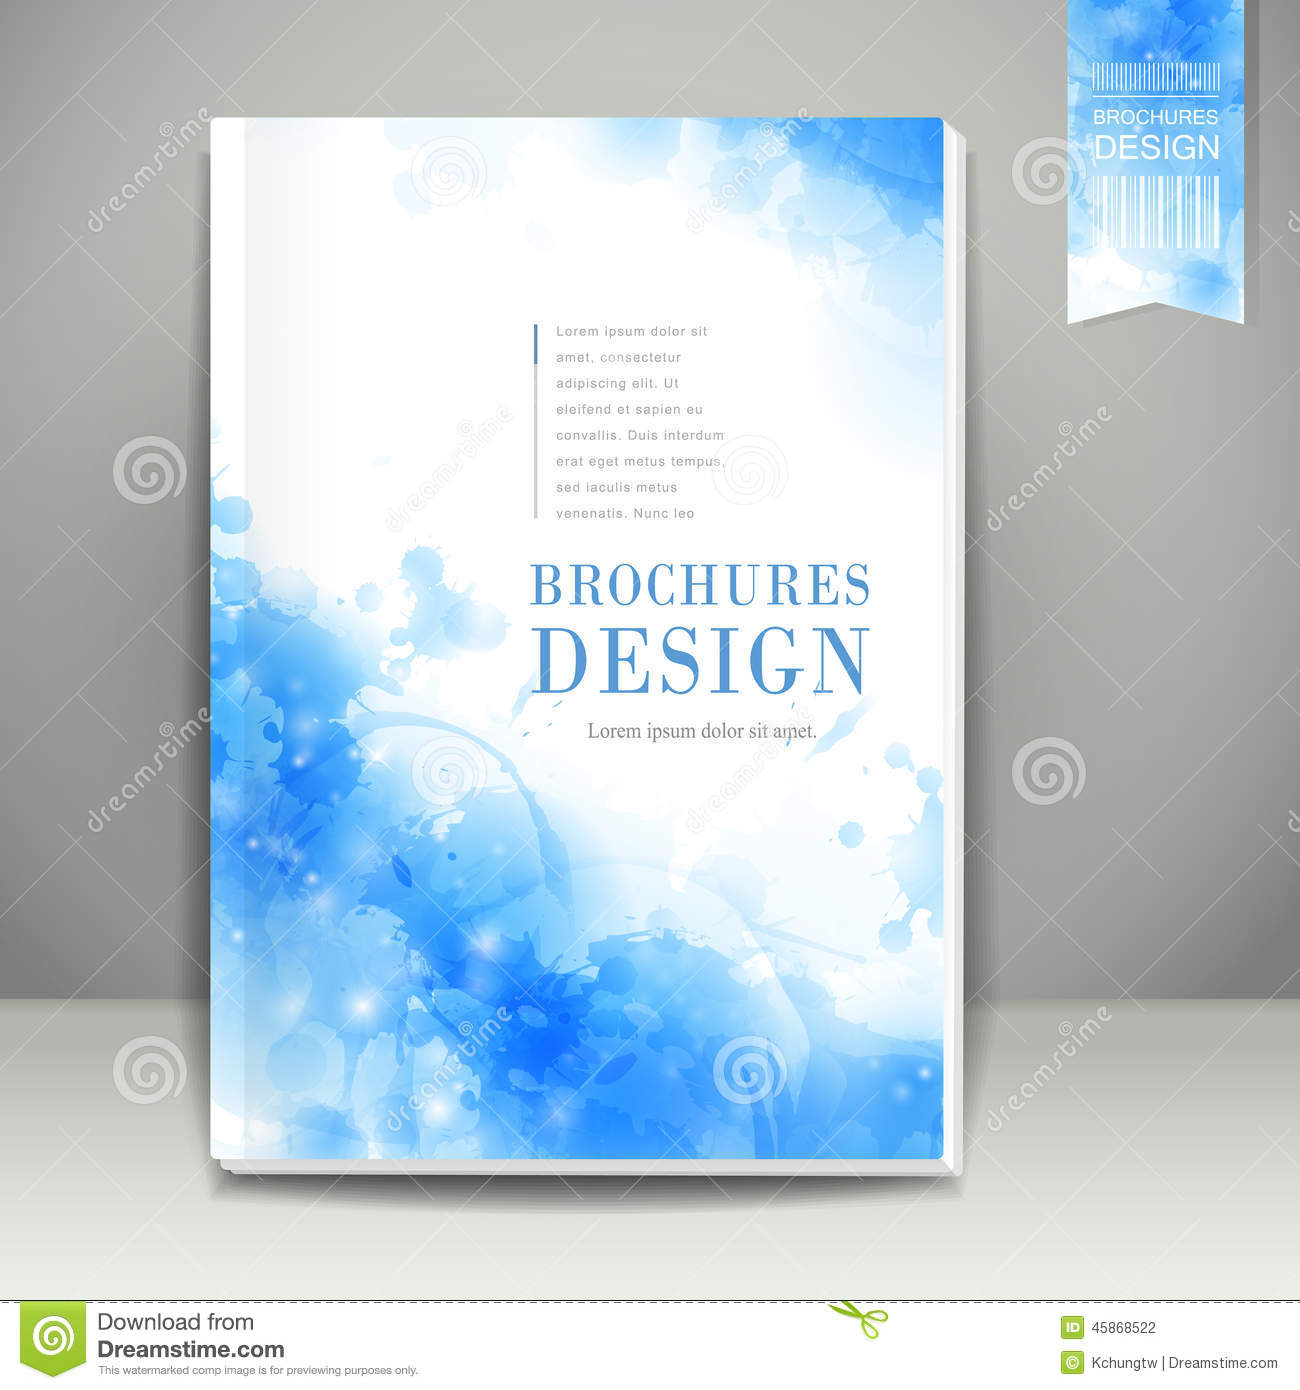 Book Cover Template Paint ~ Watercolor style background design for book cover stock